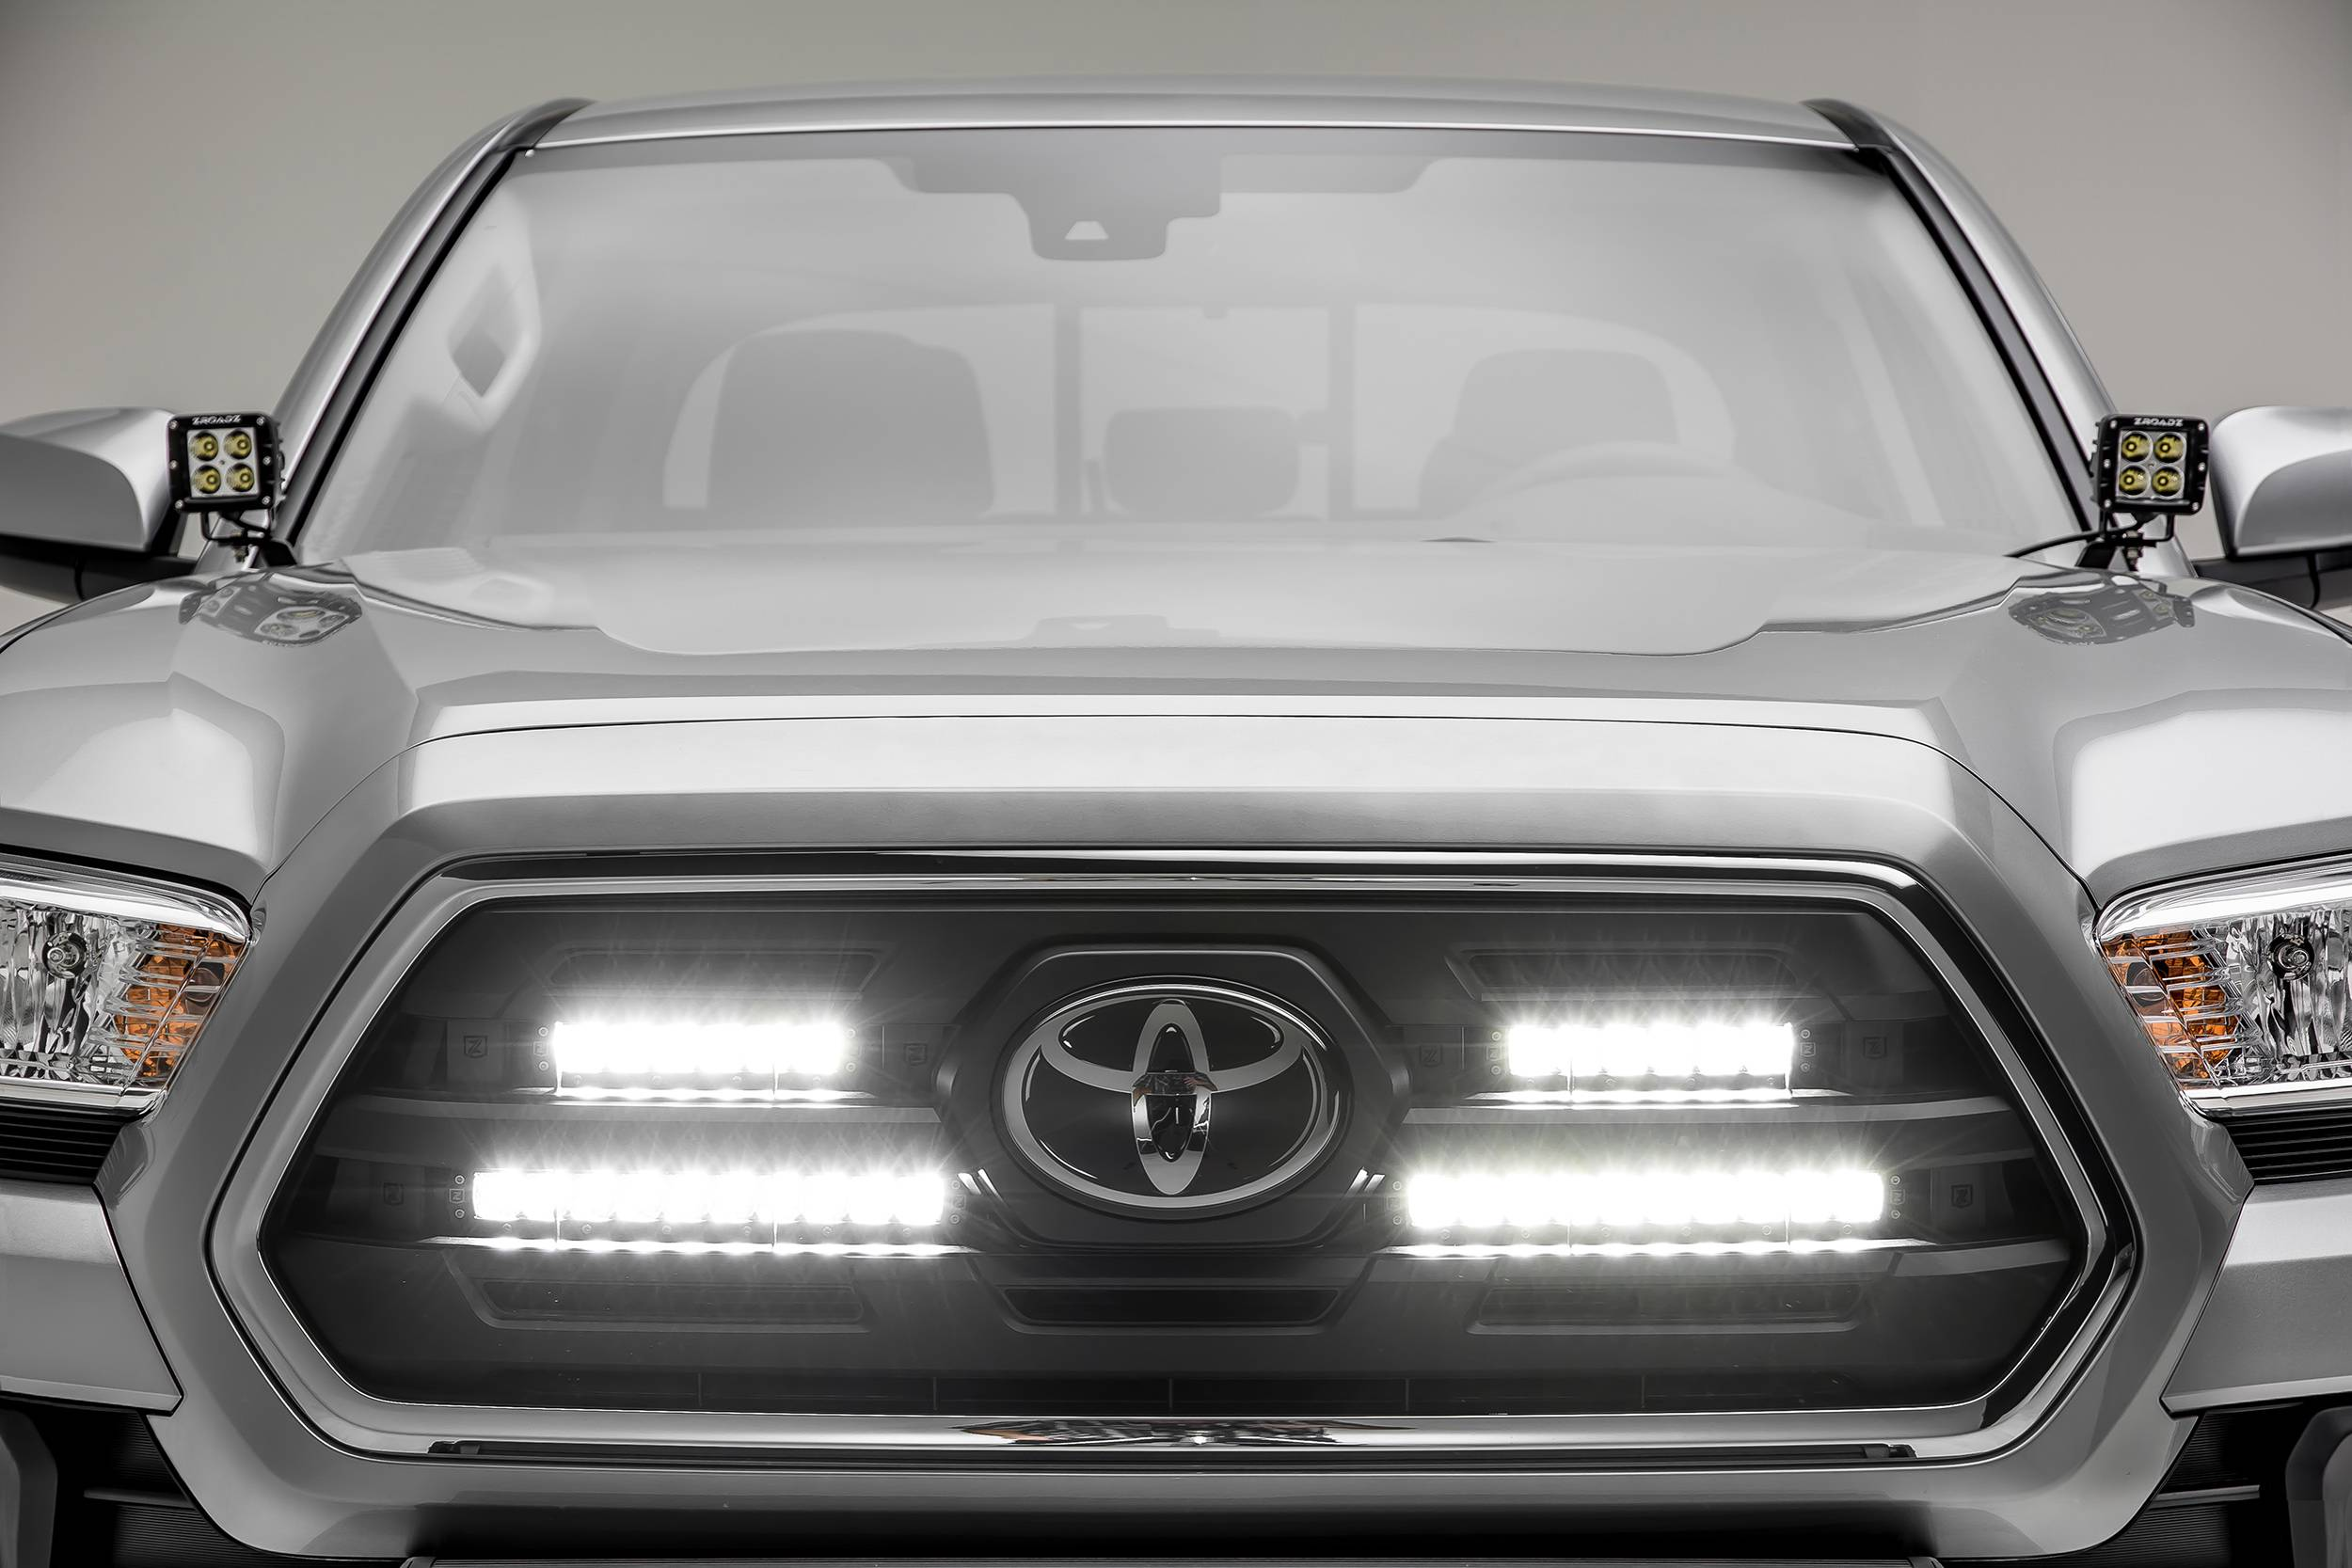 2018-2019 Toyota Tacoma OEM Grille LED Kit, Incl. (2) 6 Inch and (2) 10 Inch LED Straight Single Row Slim Light Bars - PN #Z419711-KIT